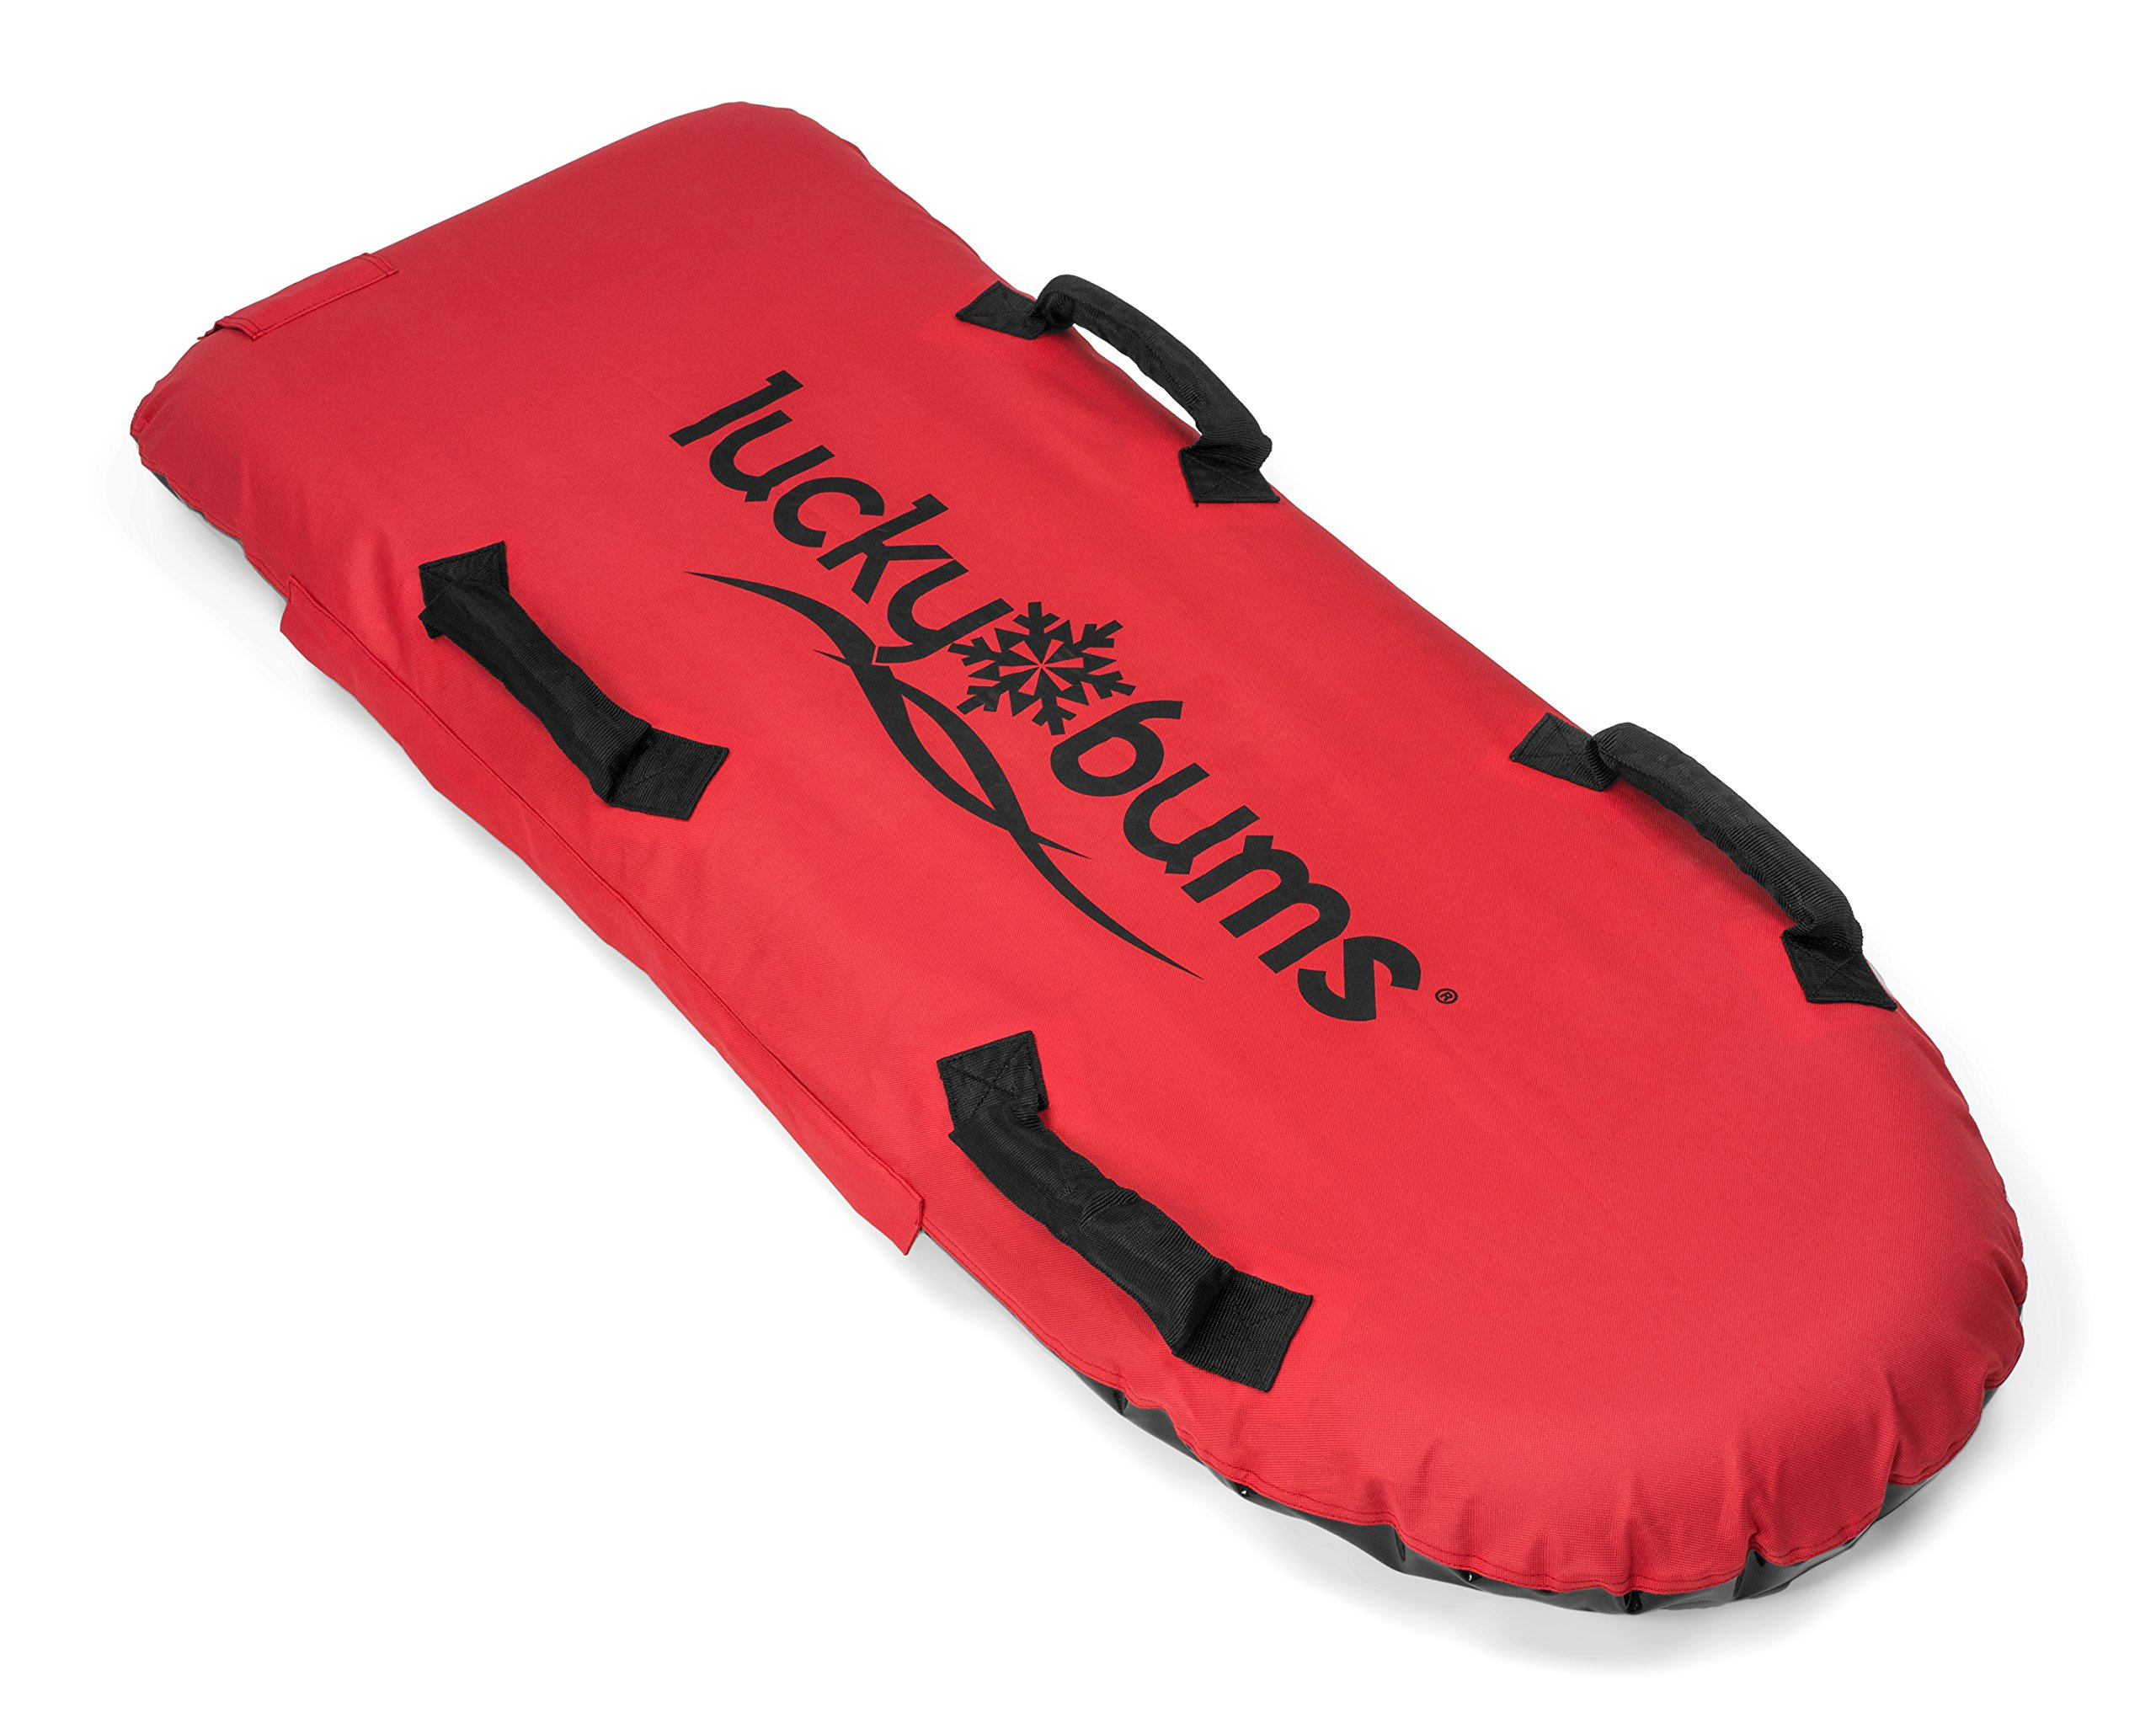 Lucky Bums The Big Air Inflatable Sled, Red, One Size